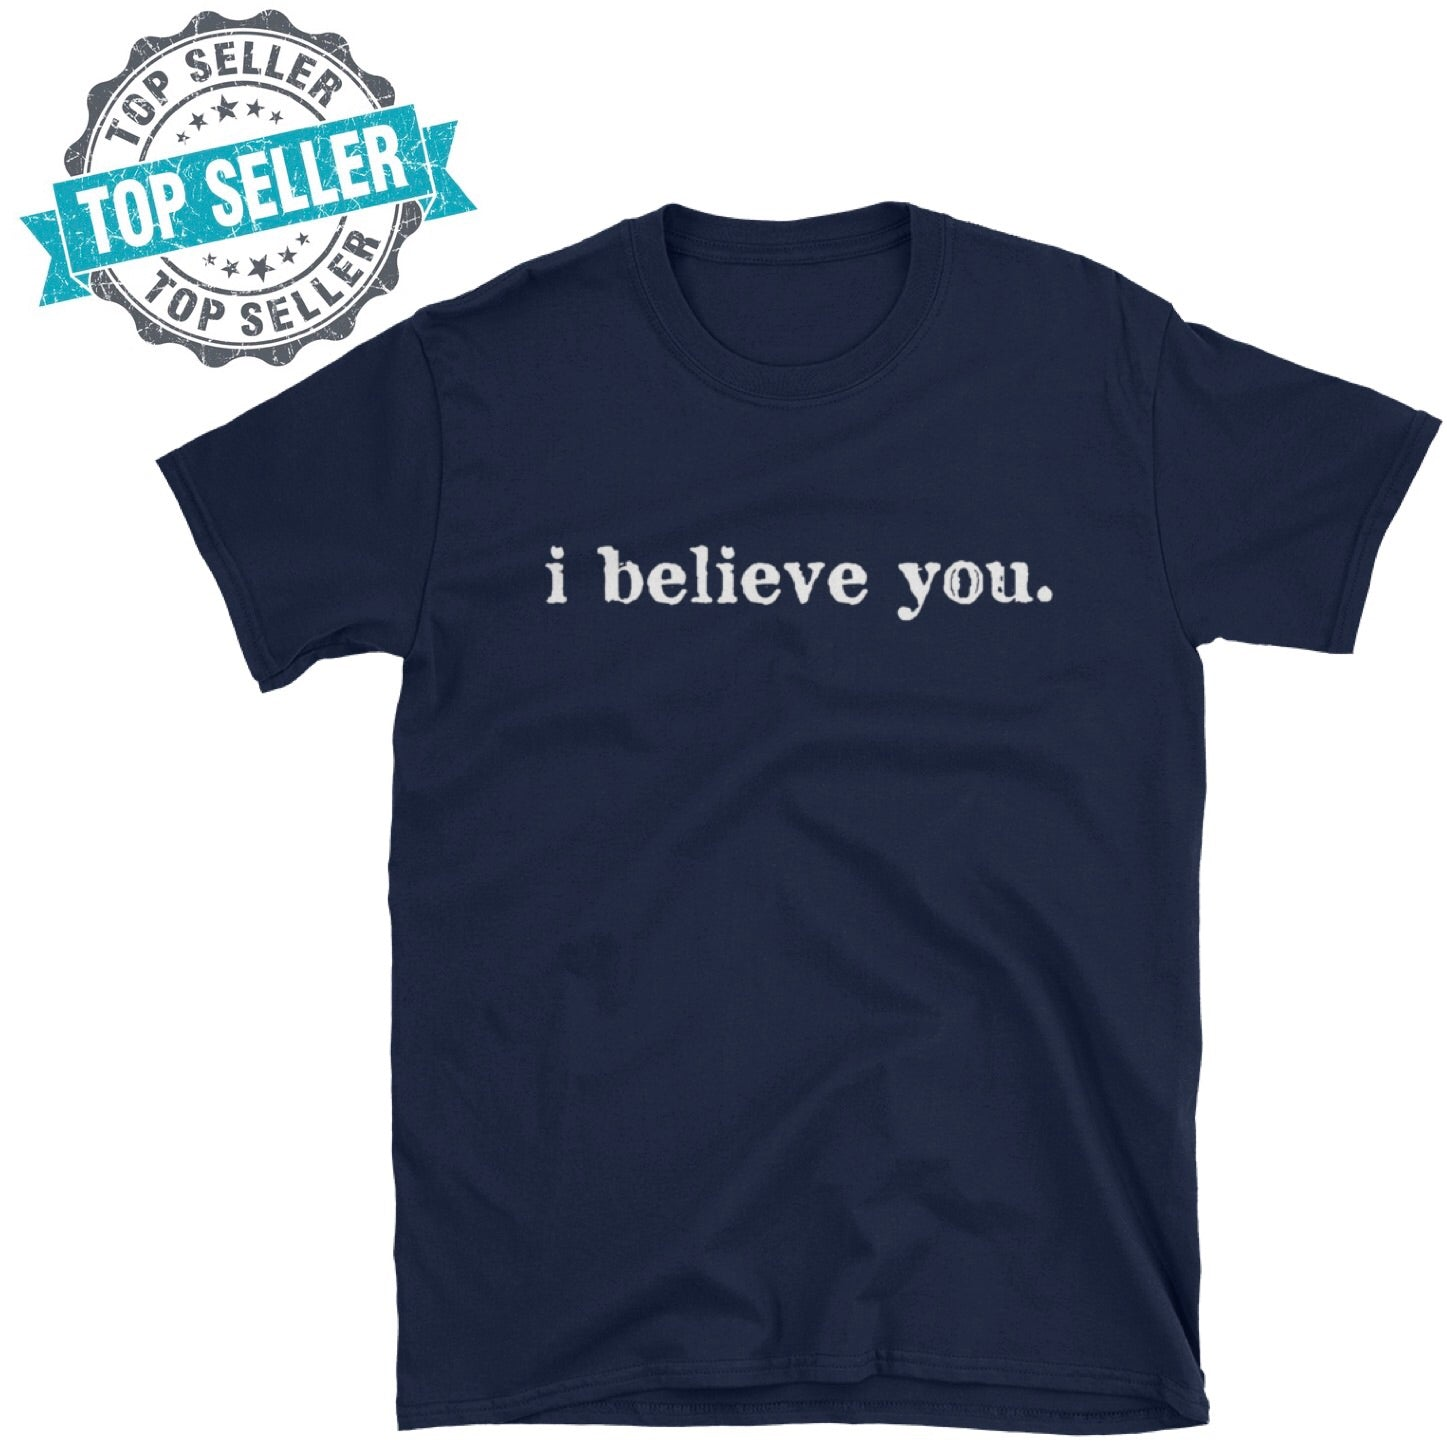 I Believe You Navy Blue T-Shirt - Domestic Violence/Mental Health Awareness - Pretty Crazy Co.